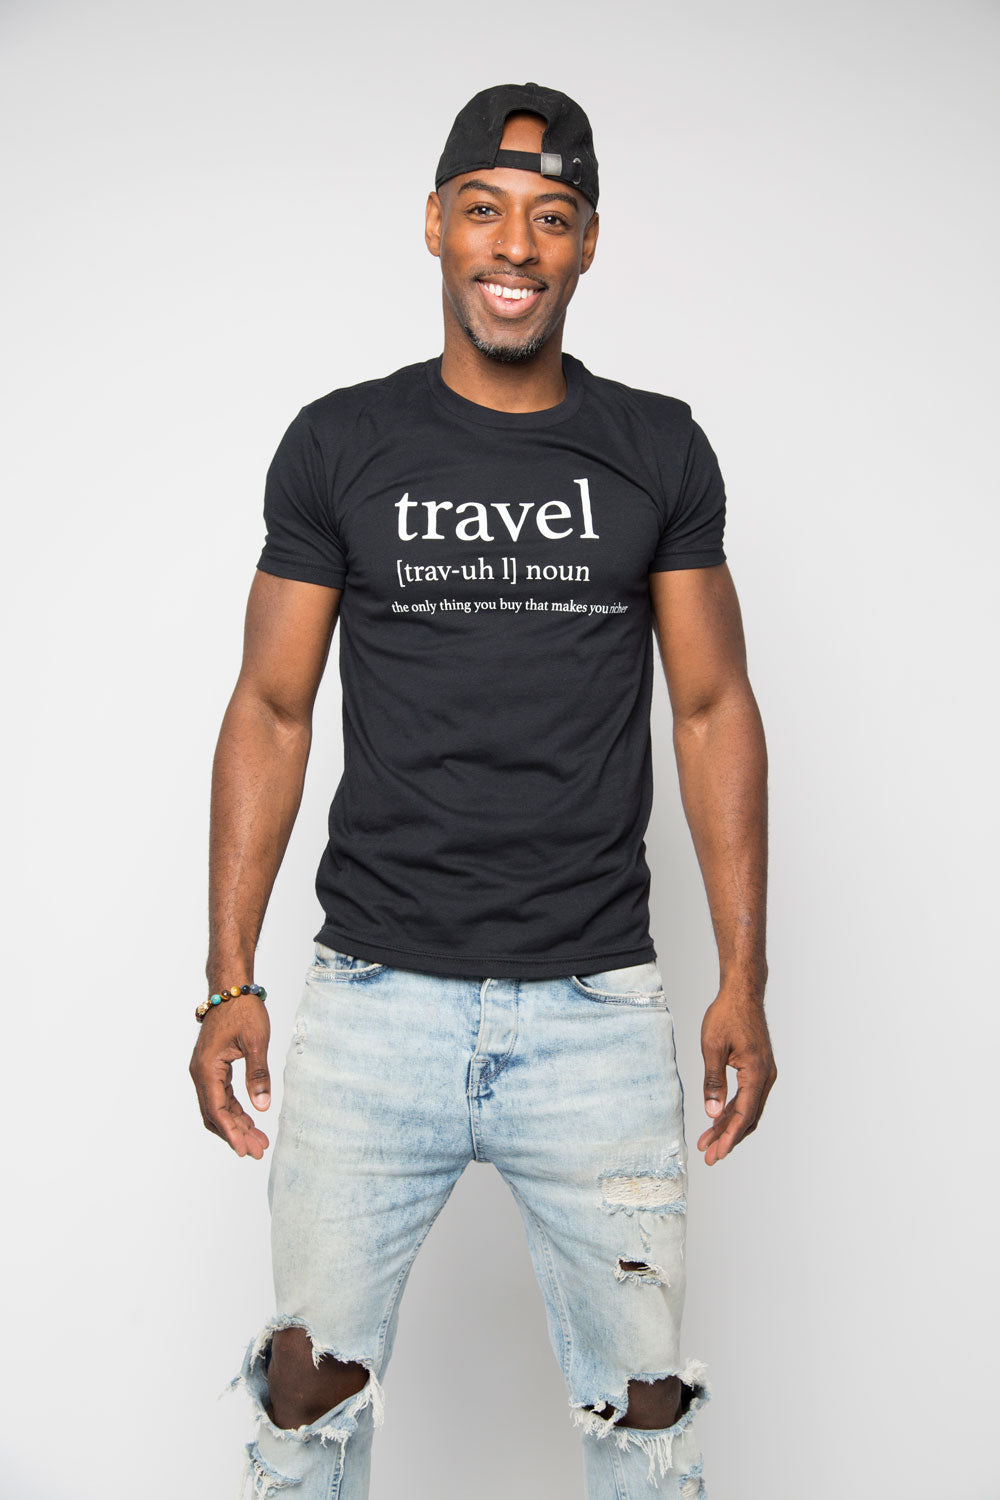 Travel Definition Shirt in Black - Trunk Series, LLC